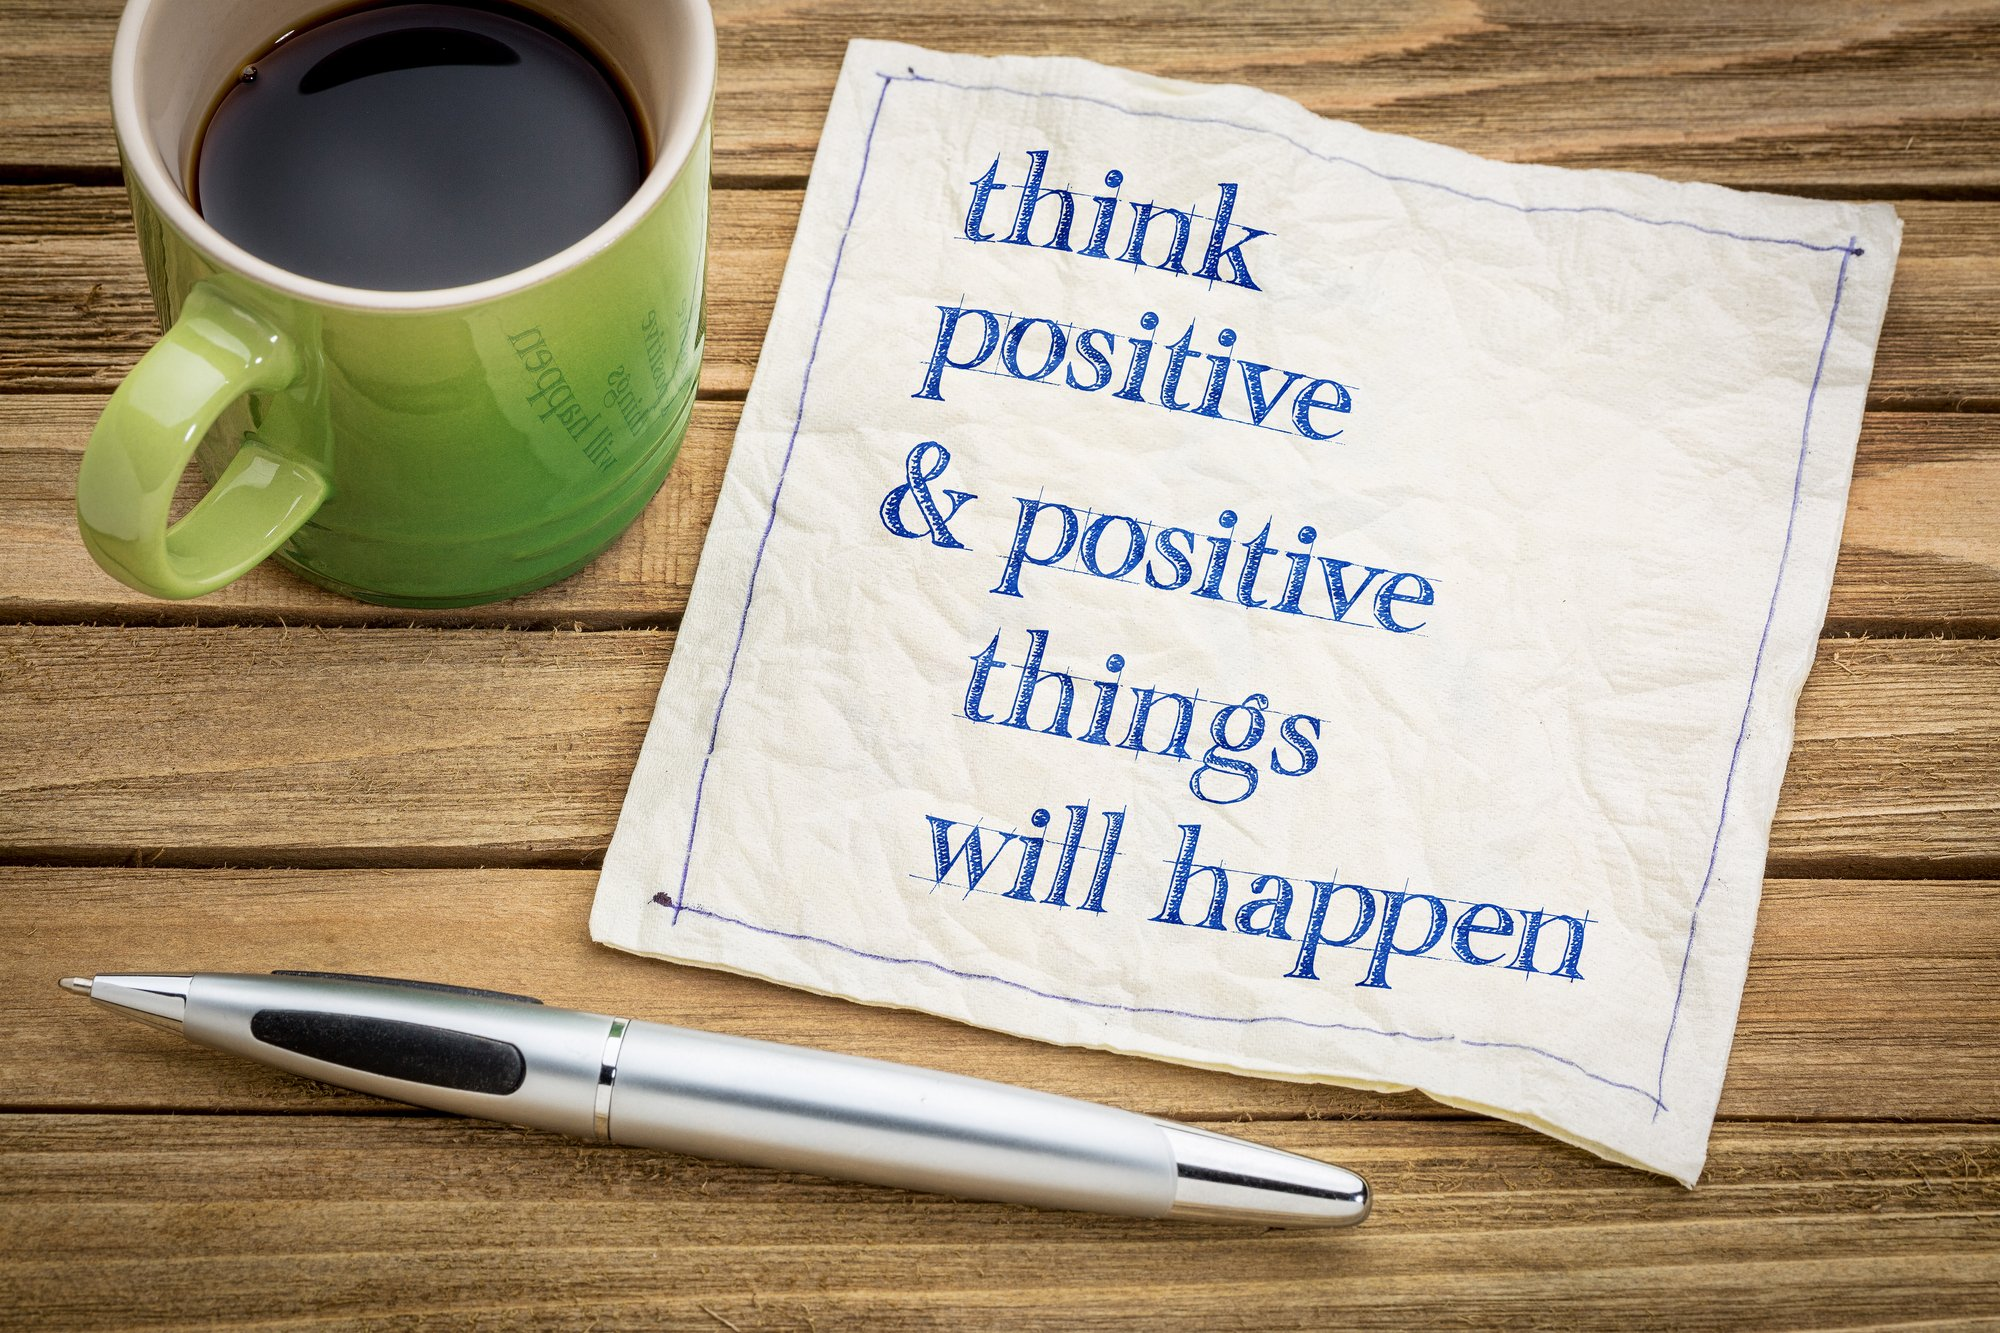 Think positive and receive blessings.